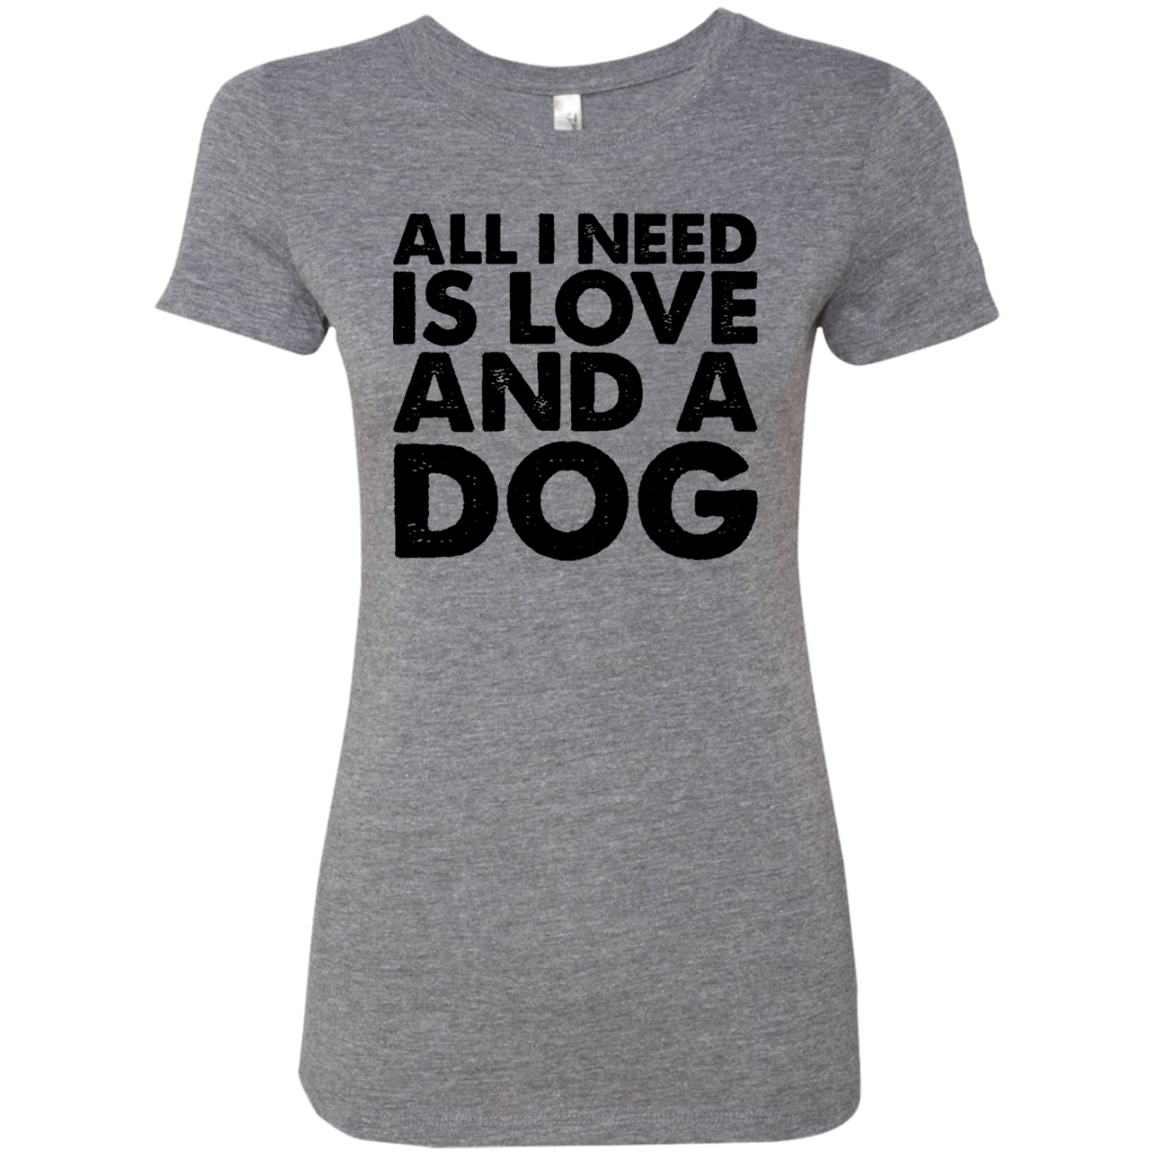 All I Need is Love and a Dog Women's Classic Tee - Trendy Tees